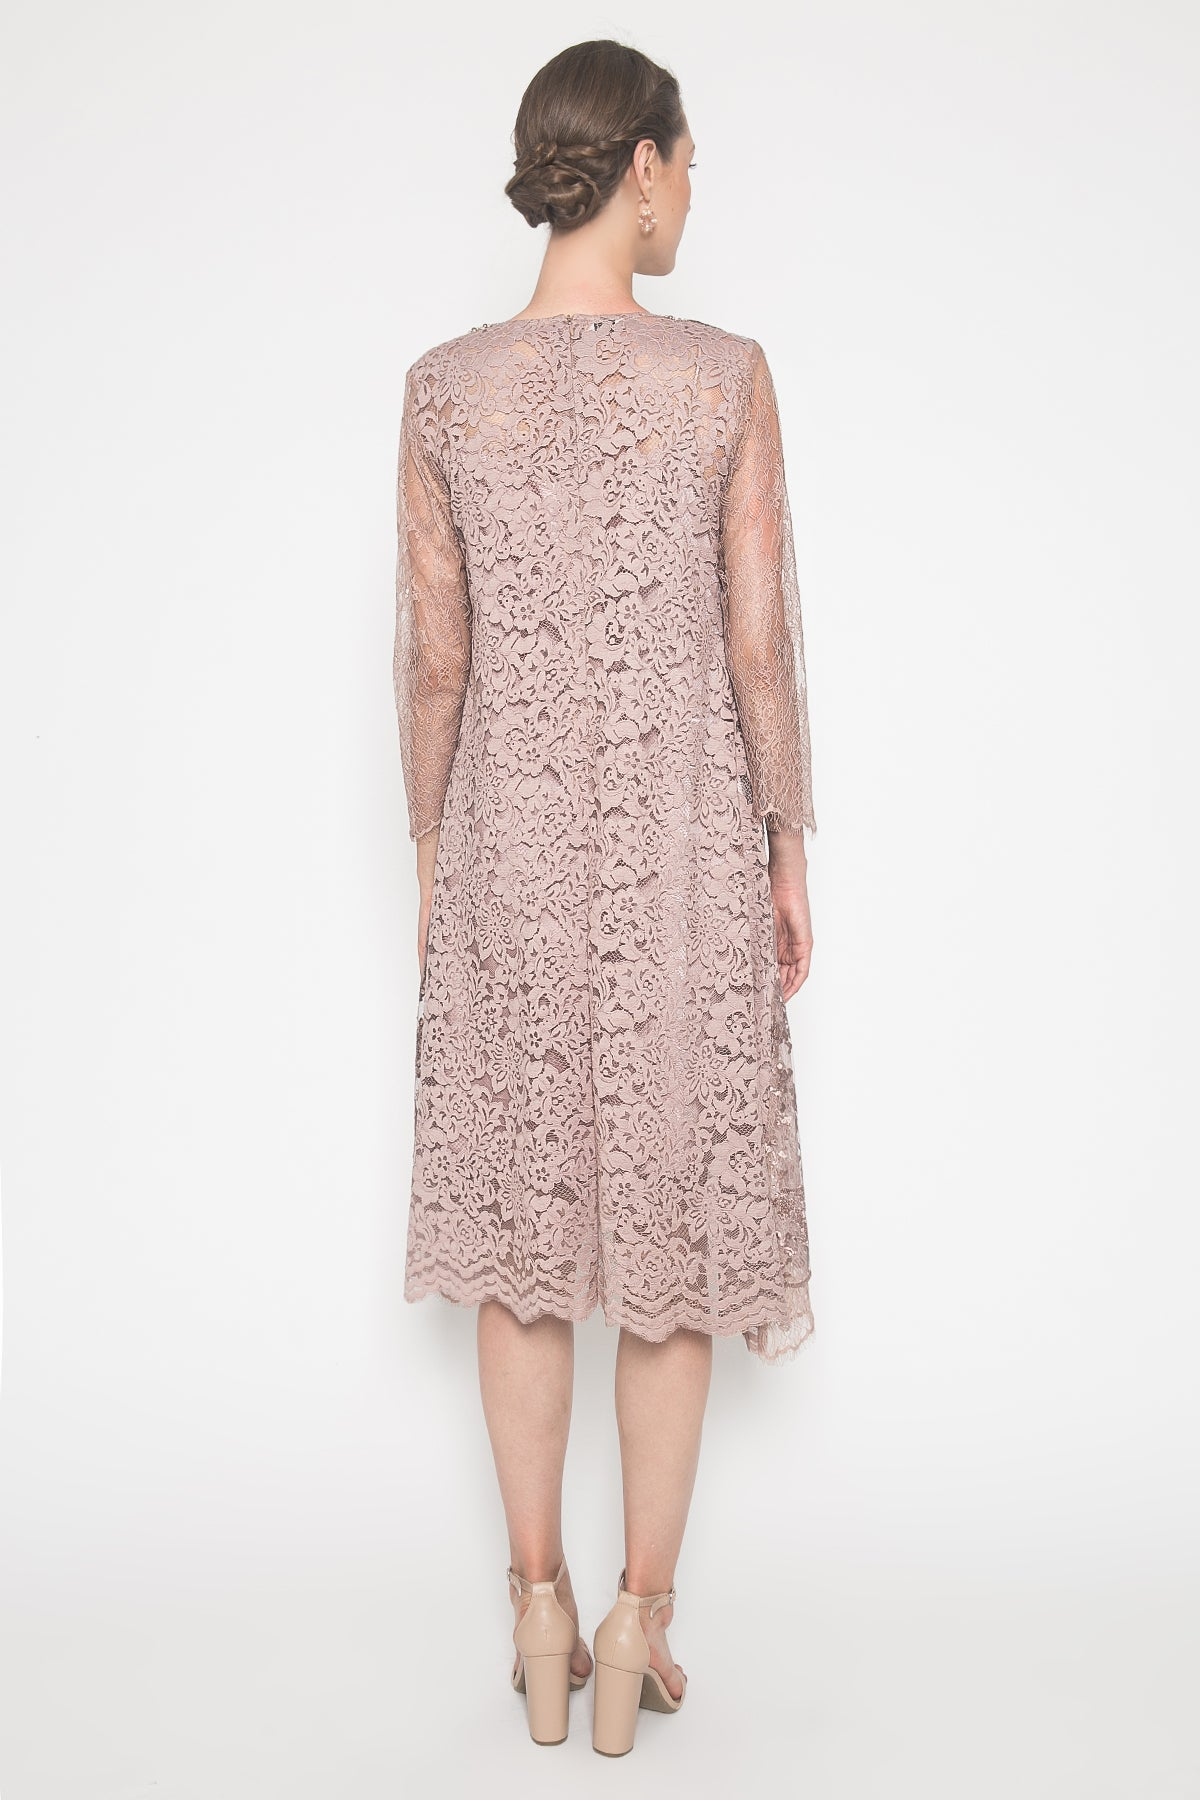 Aggie Dress in Mocca